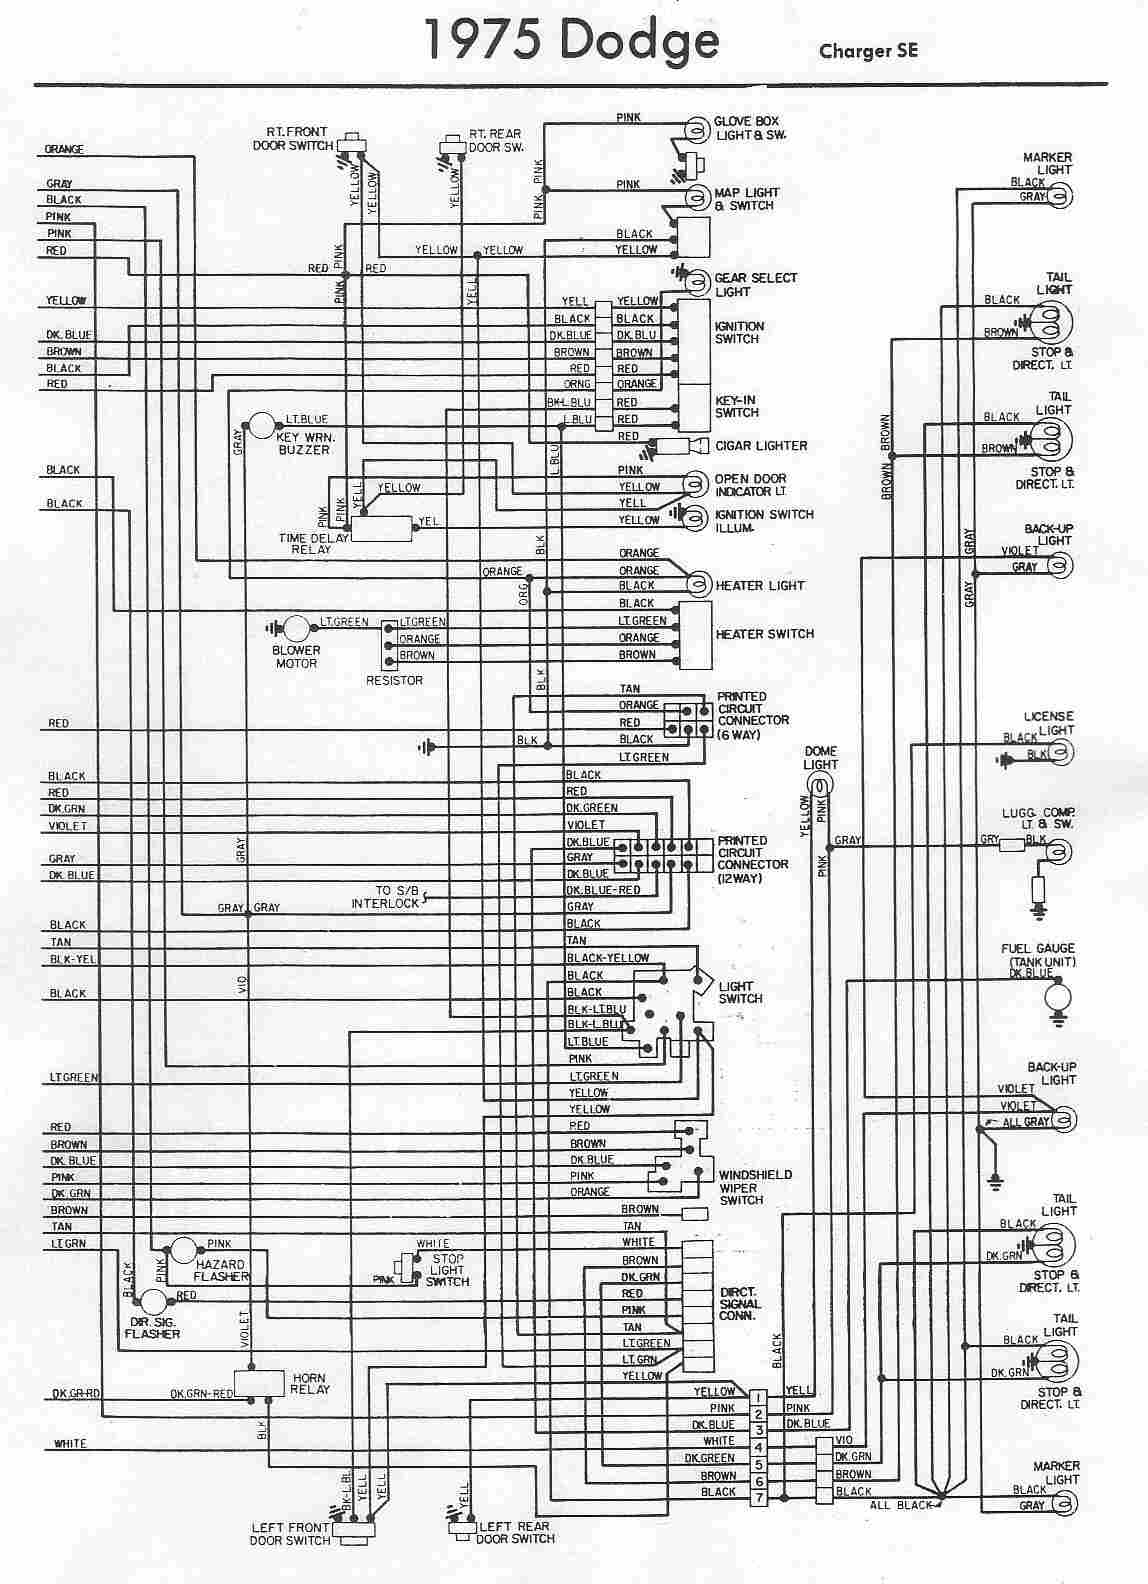 medium resolution of 1973 dodge w200 wiring diagram wiring diagram library1978 dodge power wagon wiring diagram wiring diagram g11